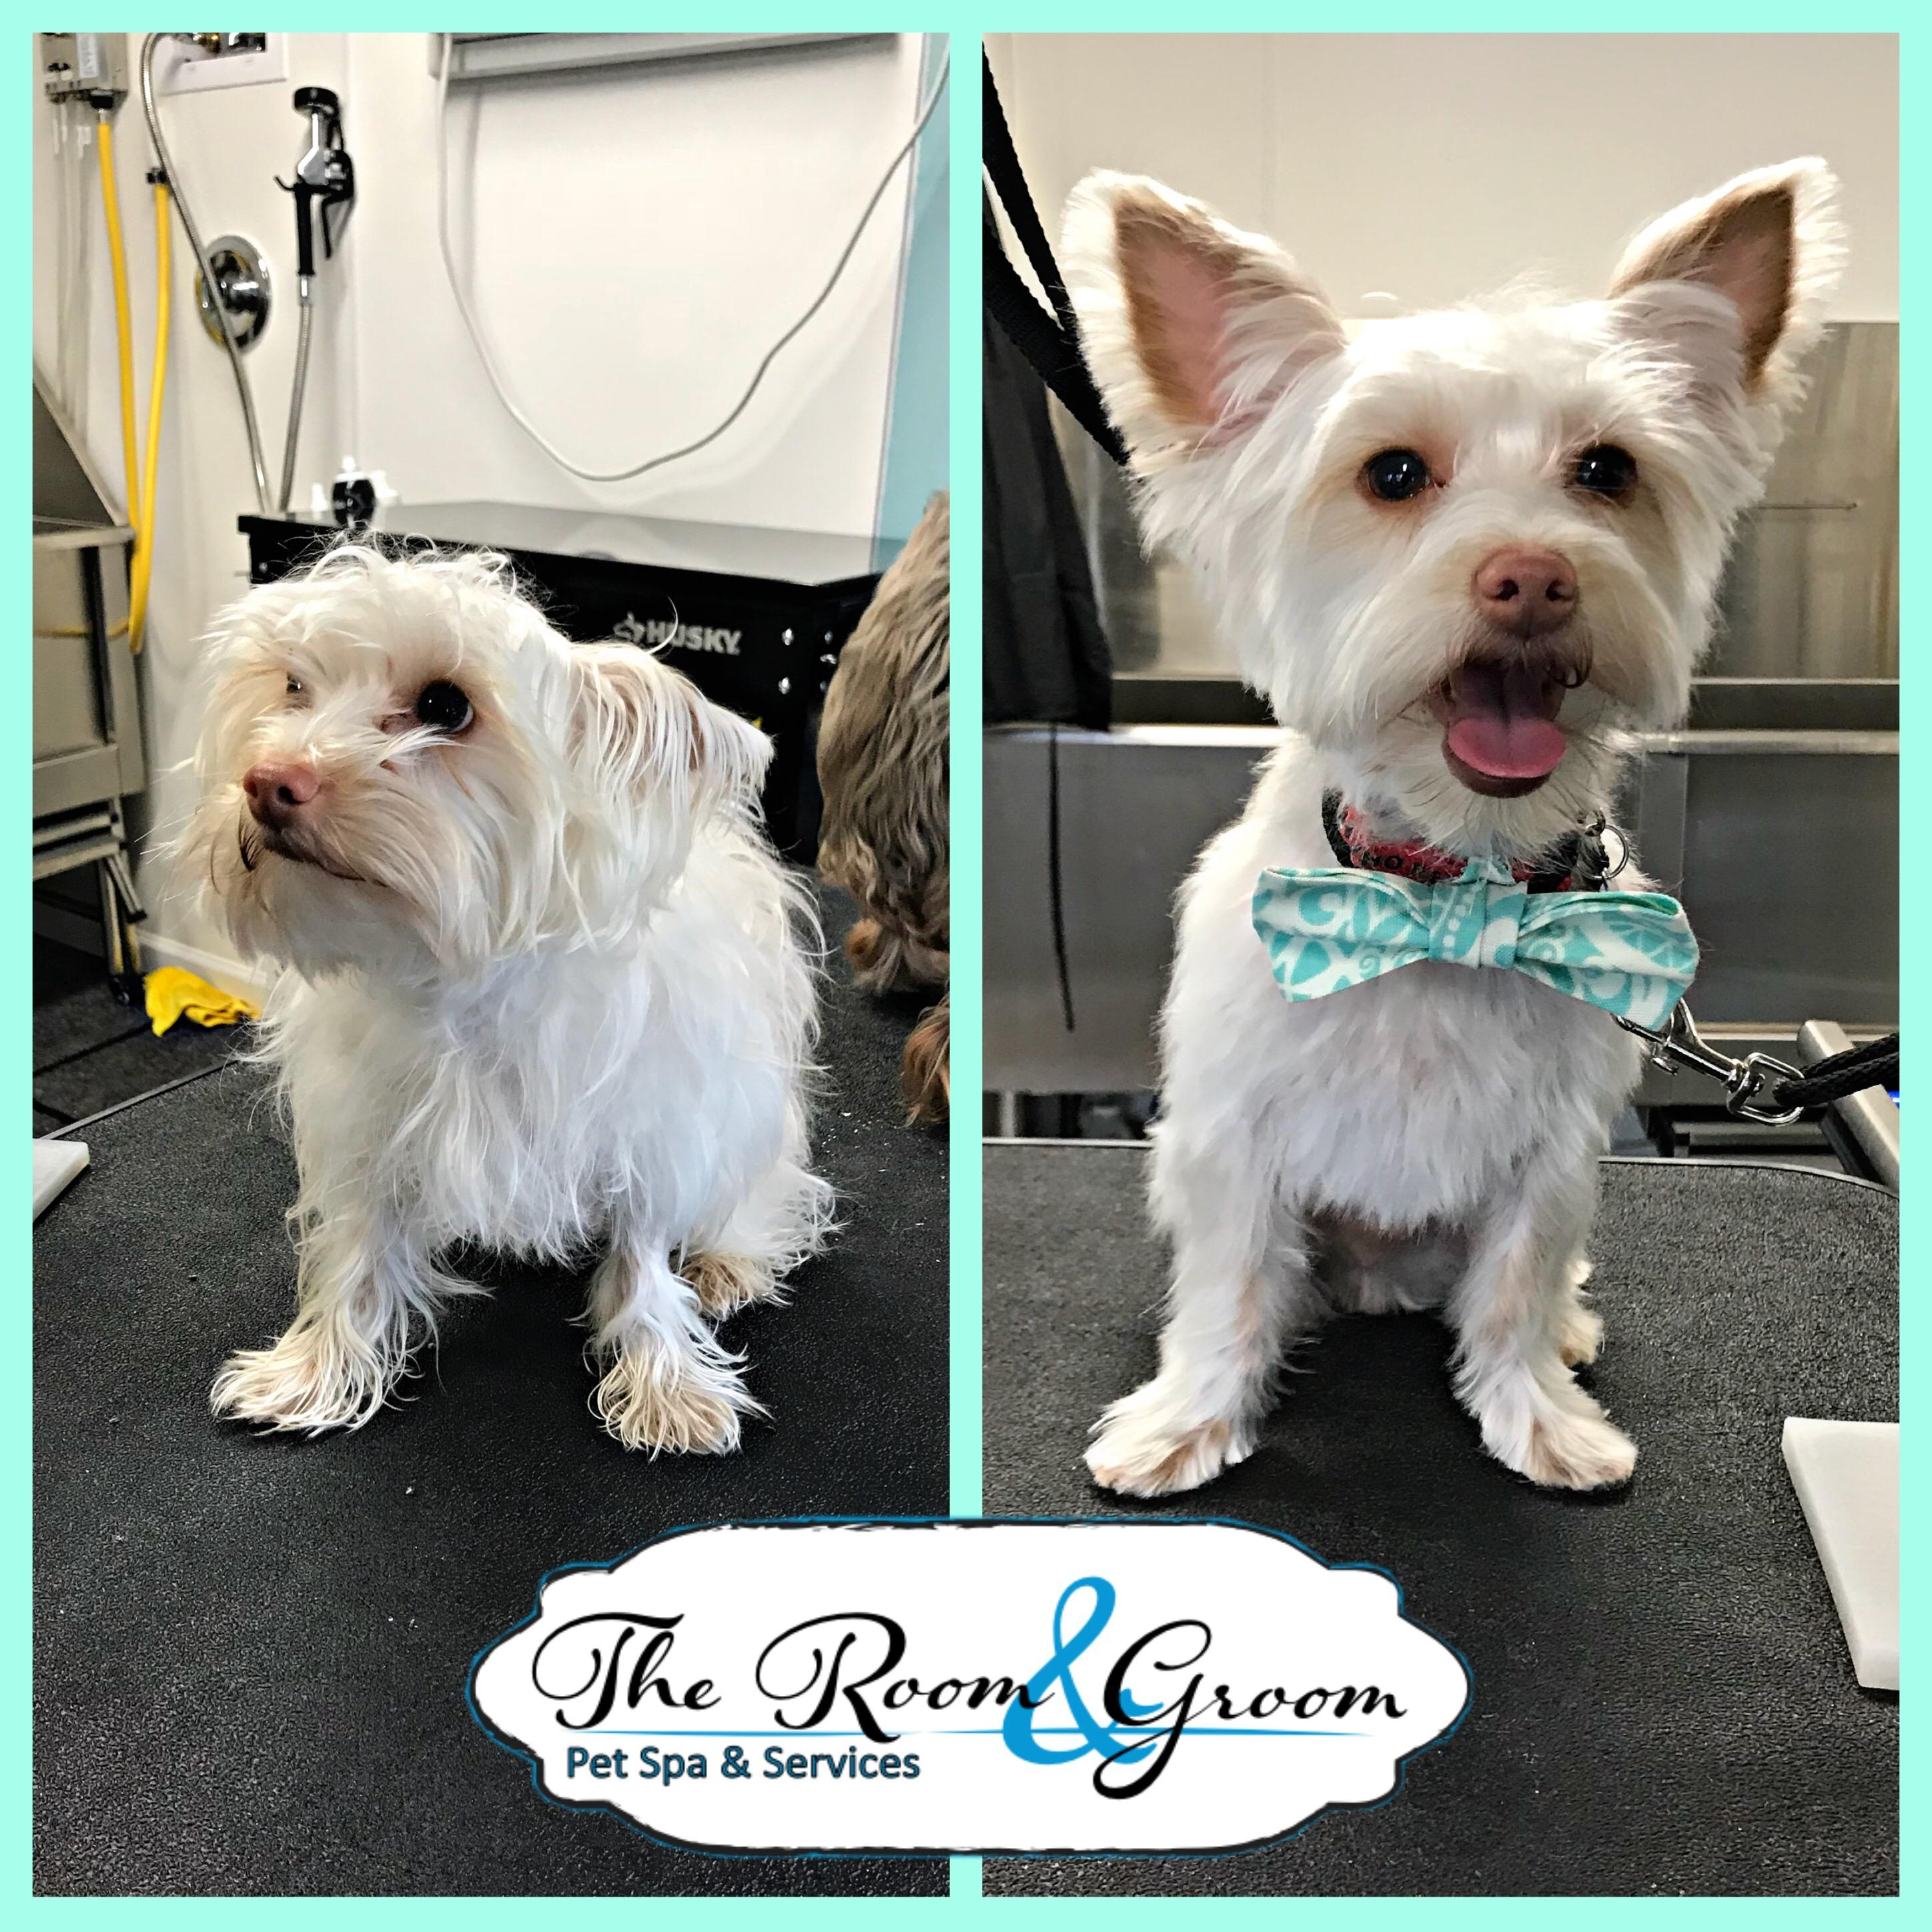 The Room & Groom, Pet Spa & Services image 49